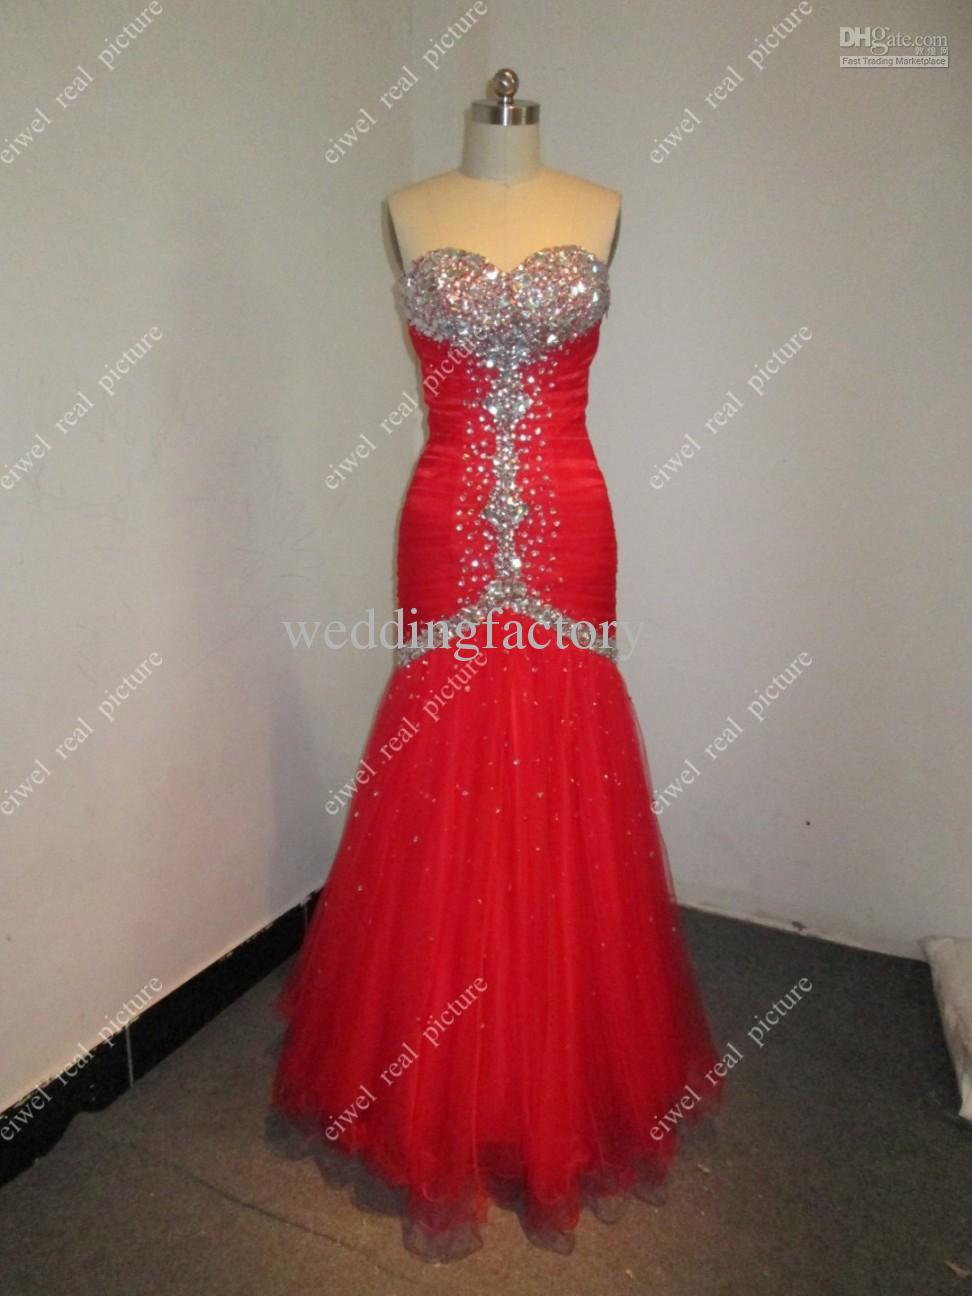 Ankle Length Mermaid Prom Dresses Beaded Sweetheart Red Lace-up Back Ladies Formal Occasion Gowns